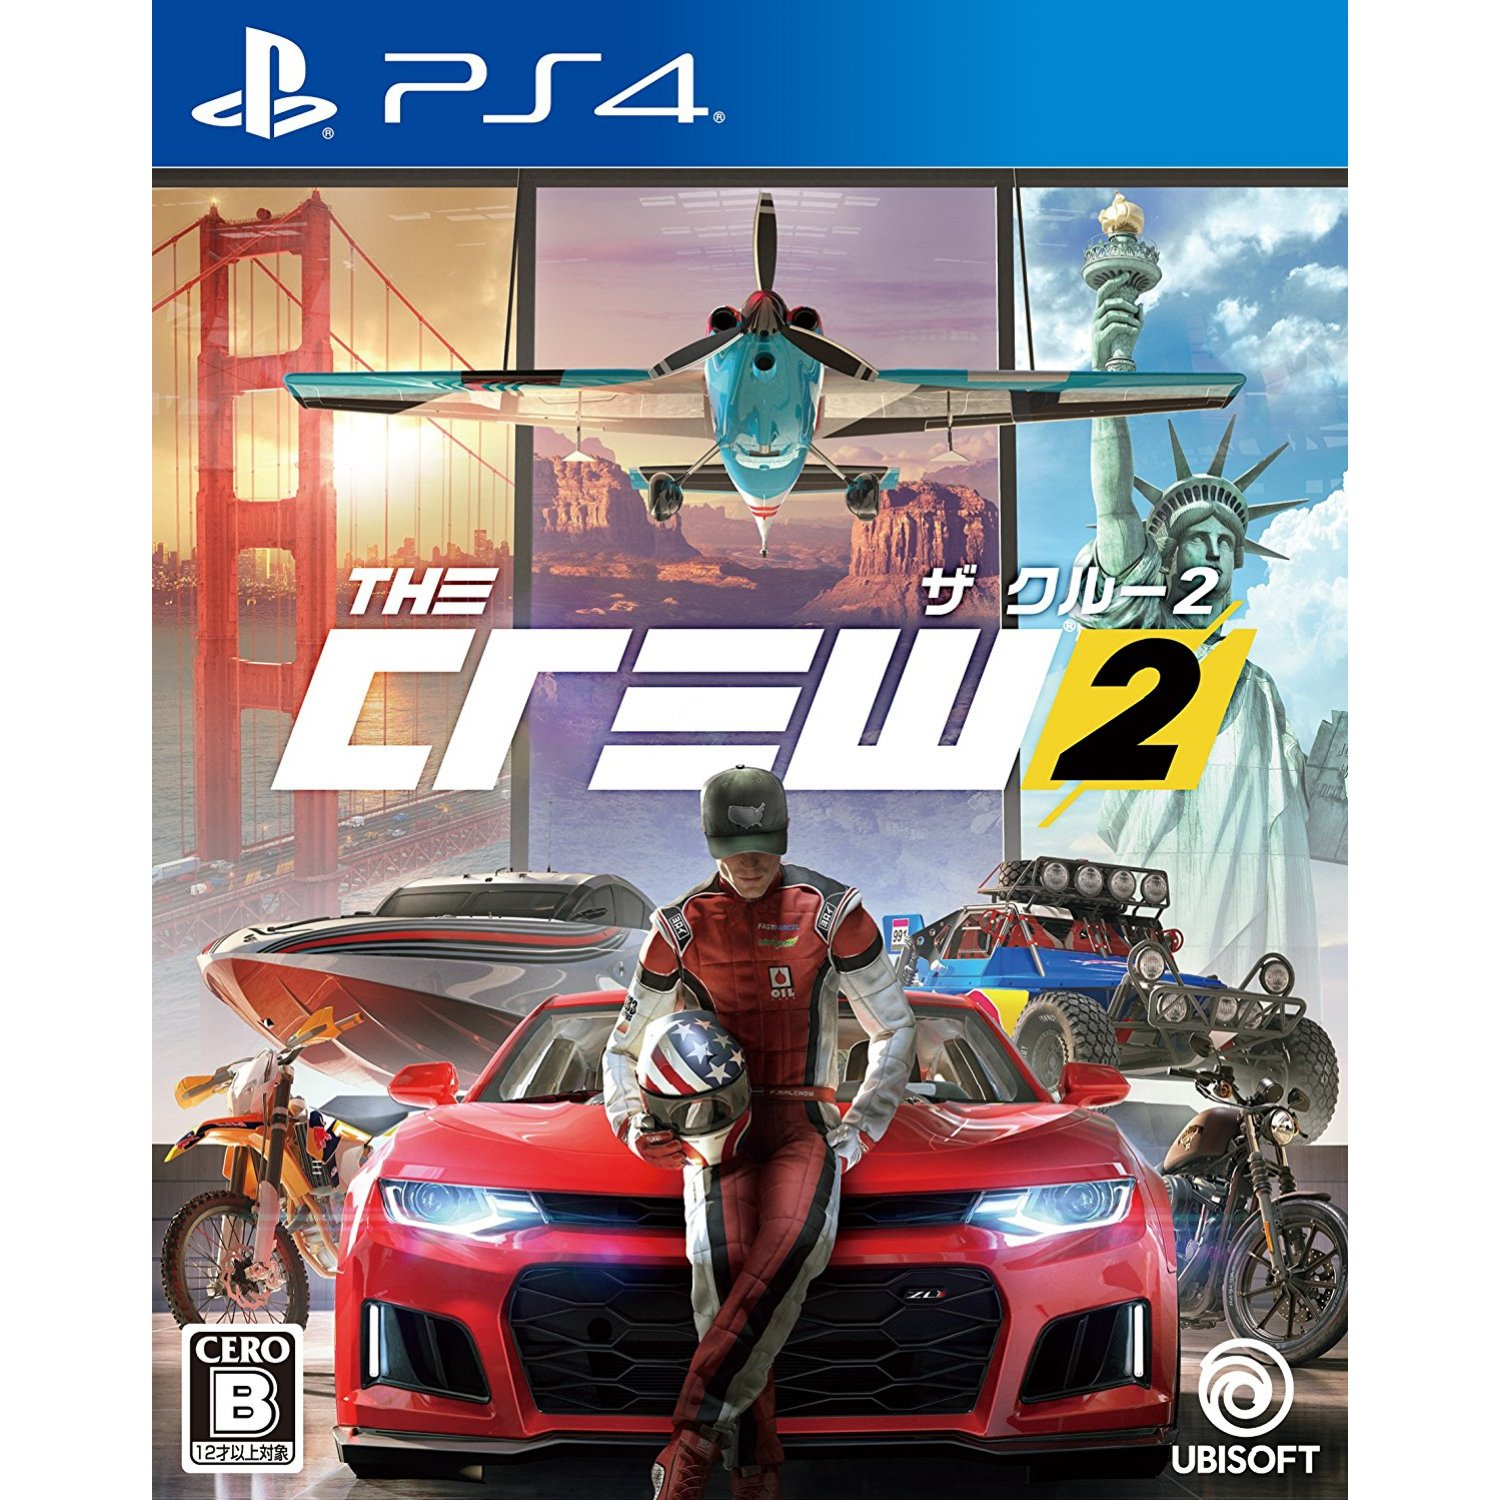 PS4: The Crew 2 (R3)